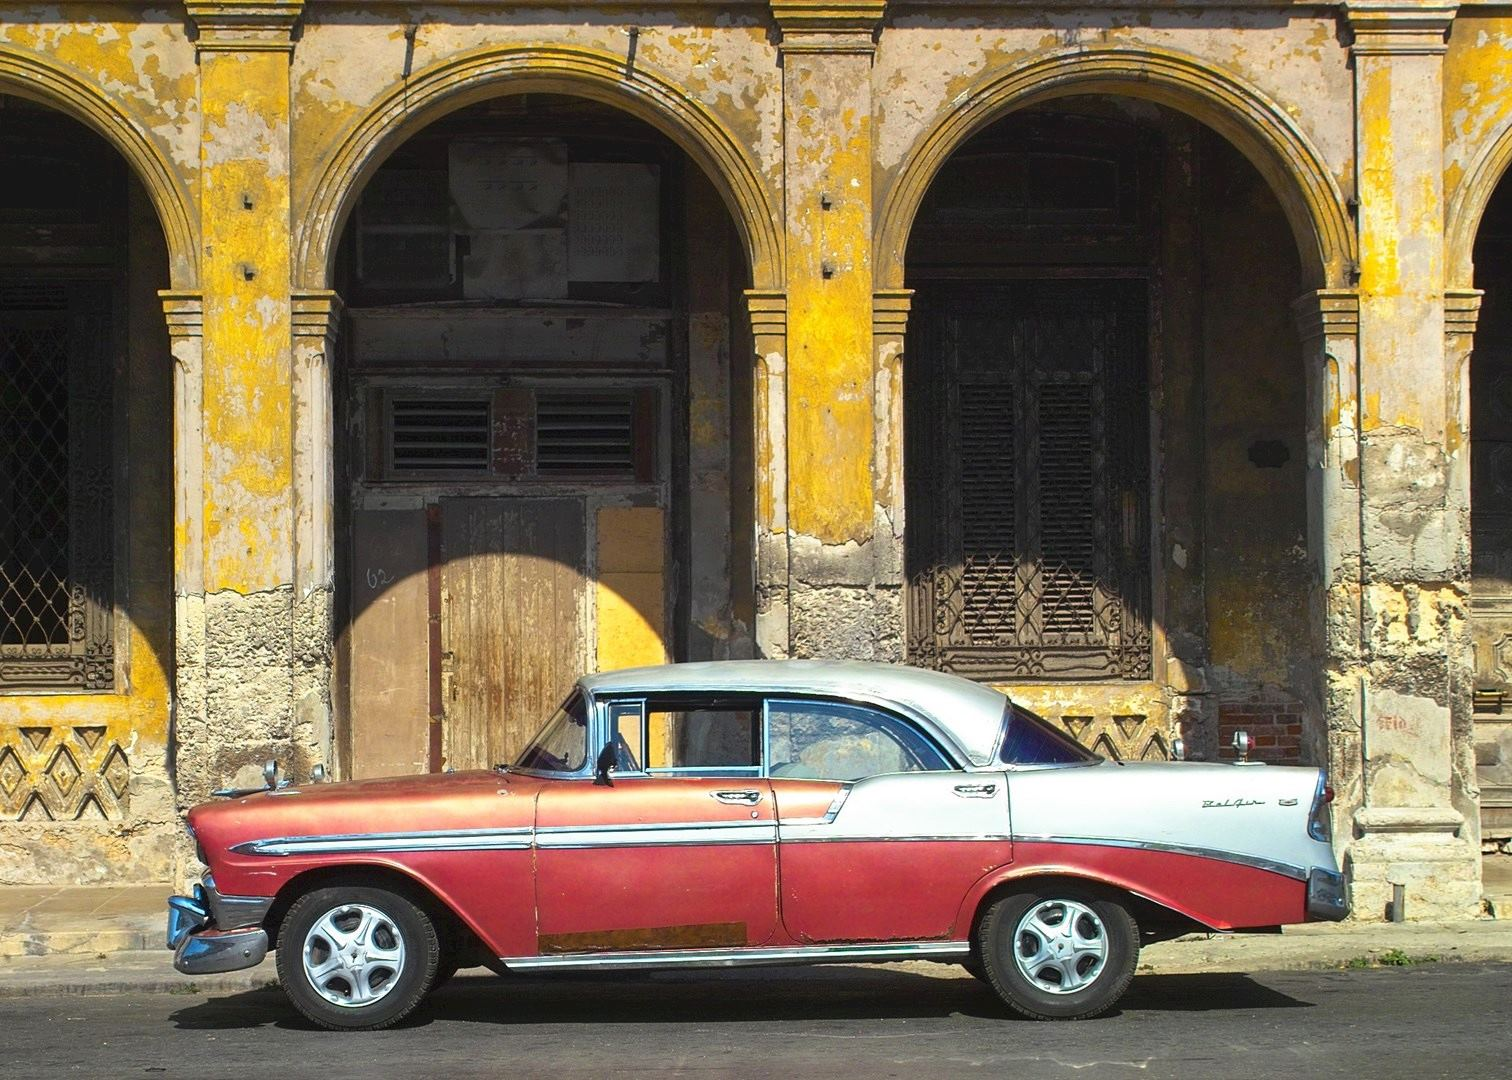 Cruising Cuba Amp The Cayman Islands Havana And The Star